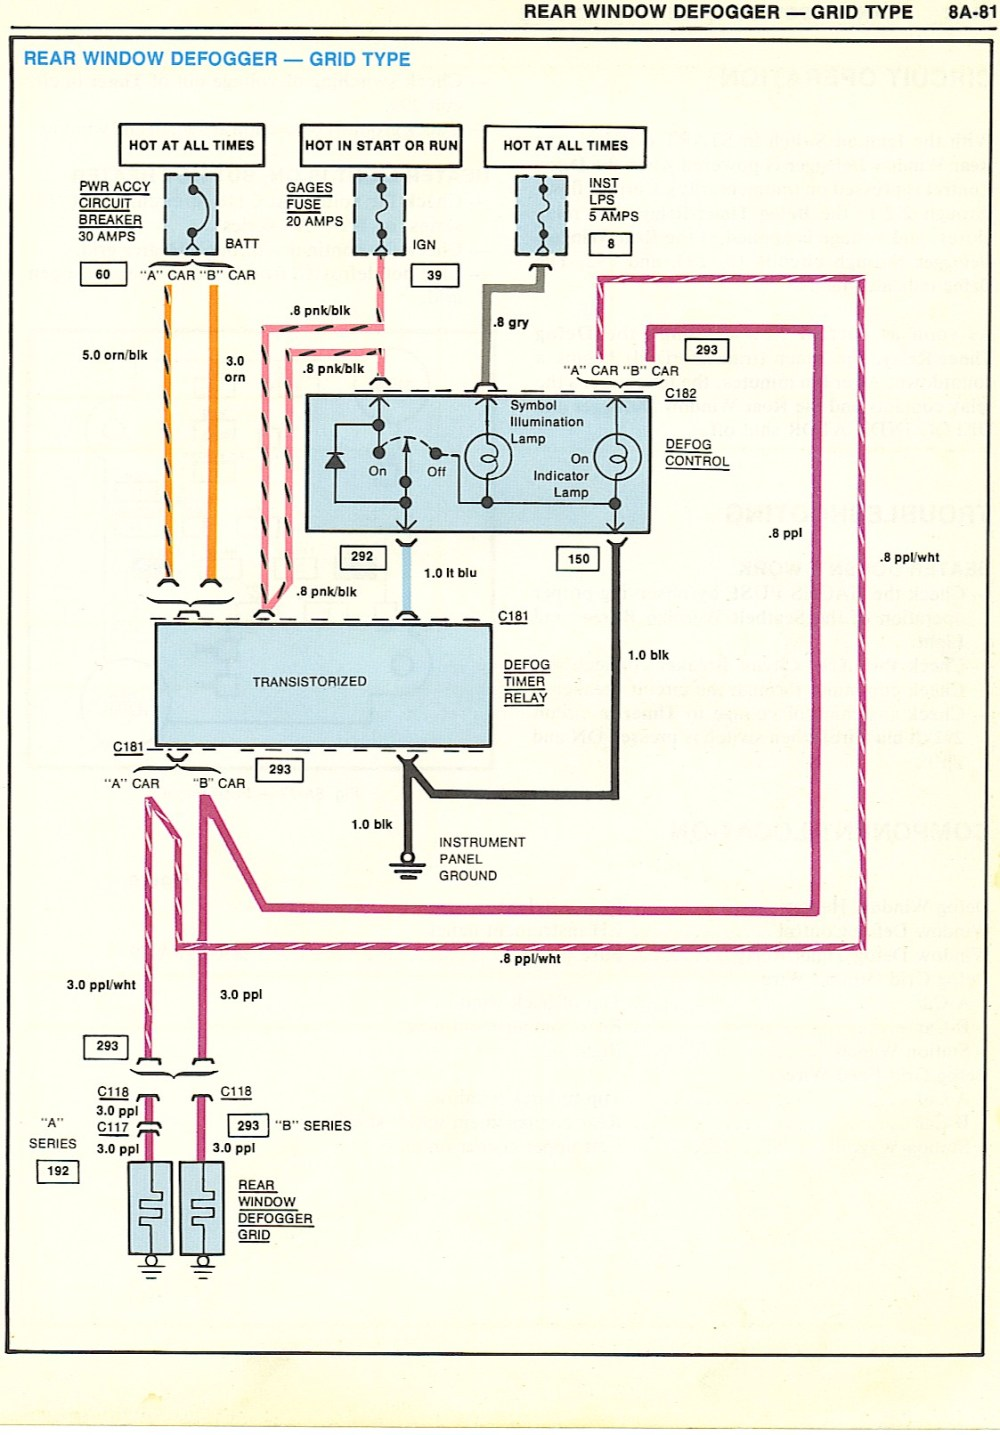 medium resolution of 1973 firebird rear defroster wiring diagram